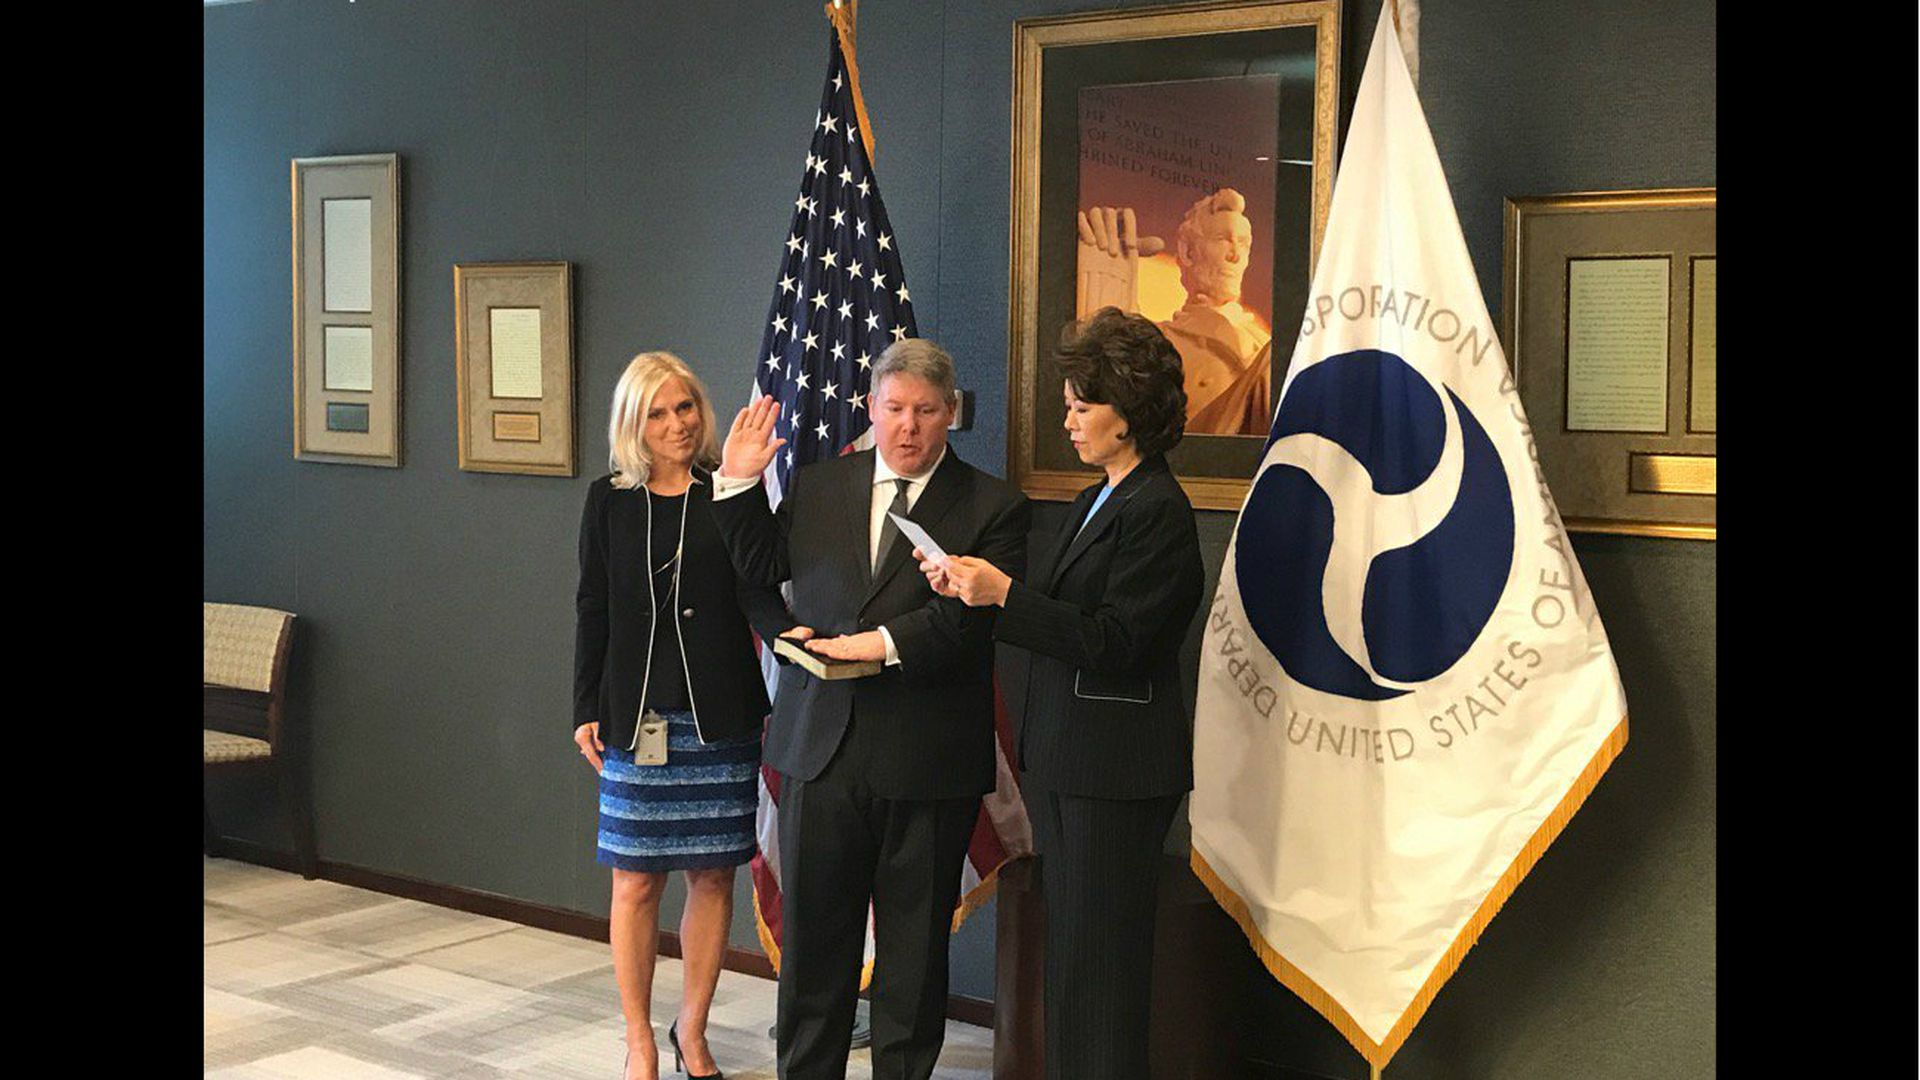 Hall's swearing in